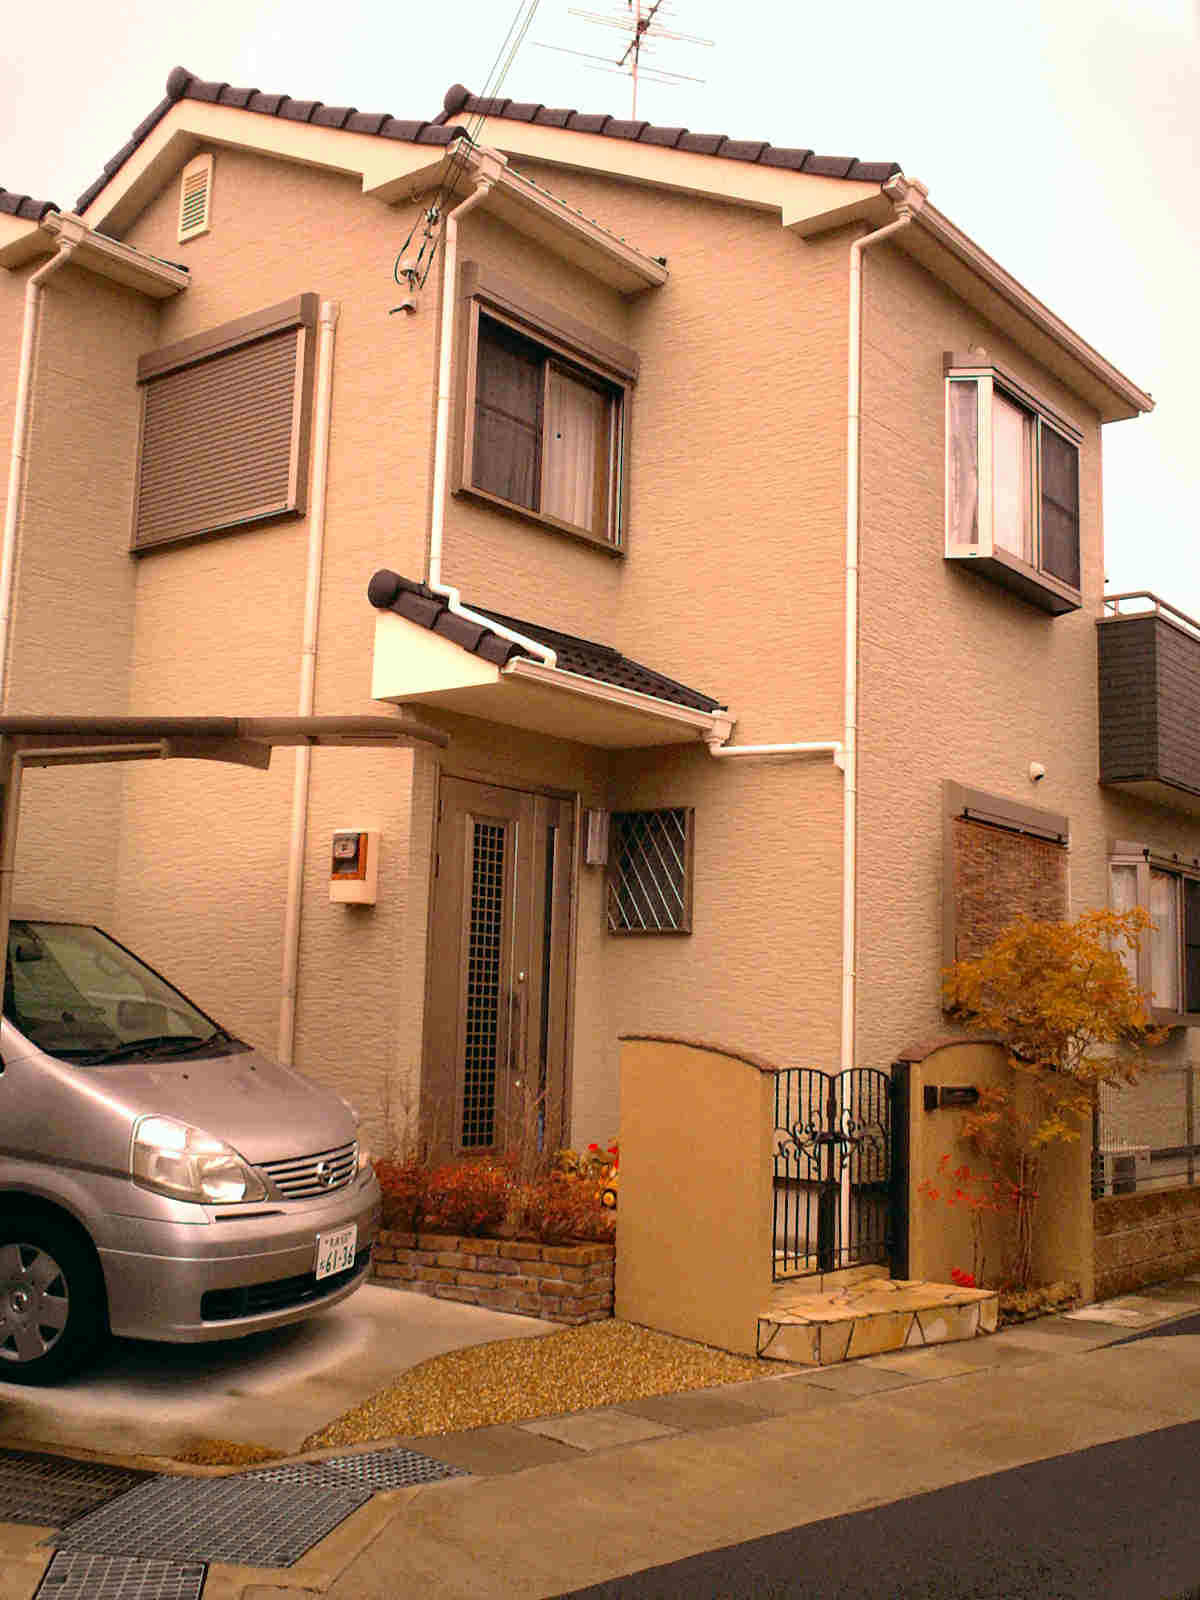 house the in Japan you are